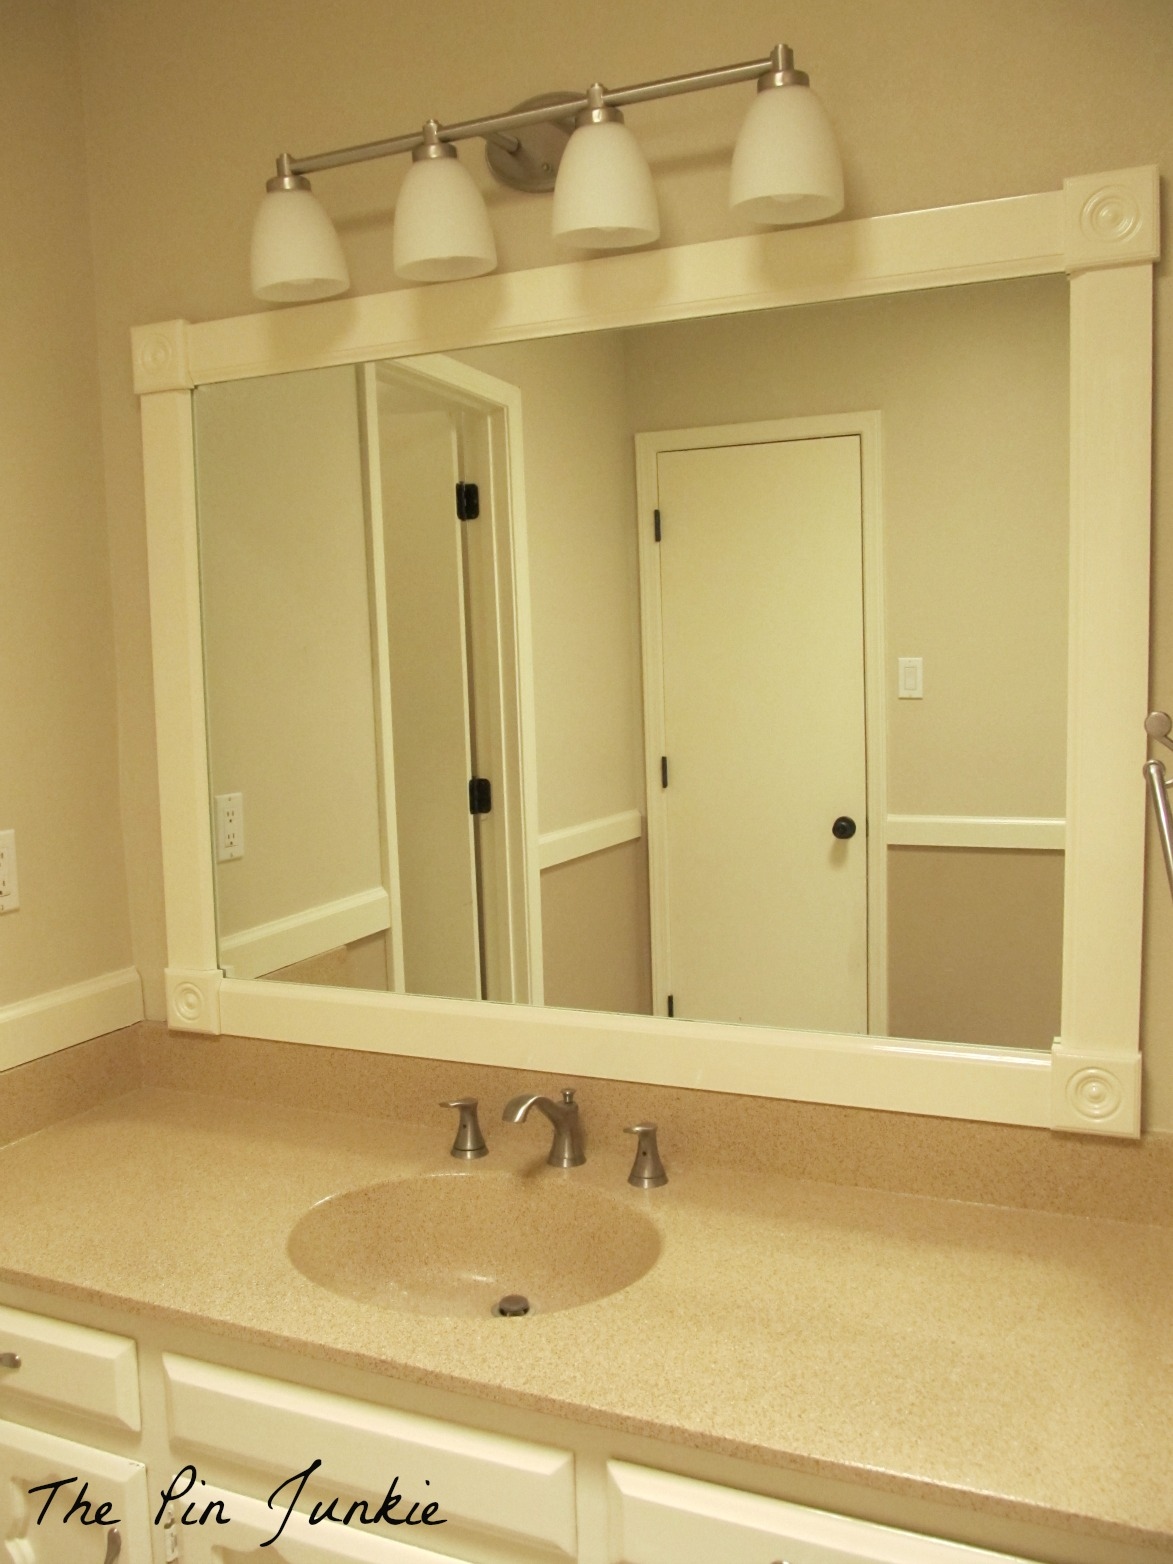 How to frame a bathroom mirror Frames for bathroom wall mirrors